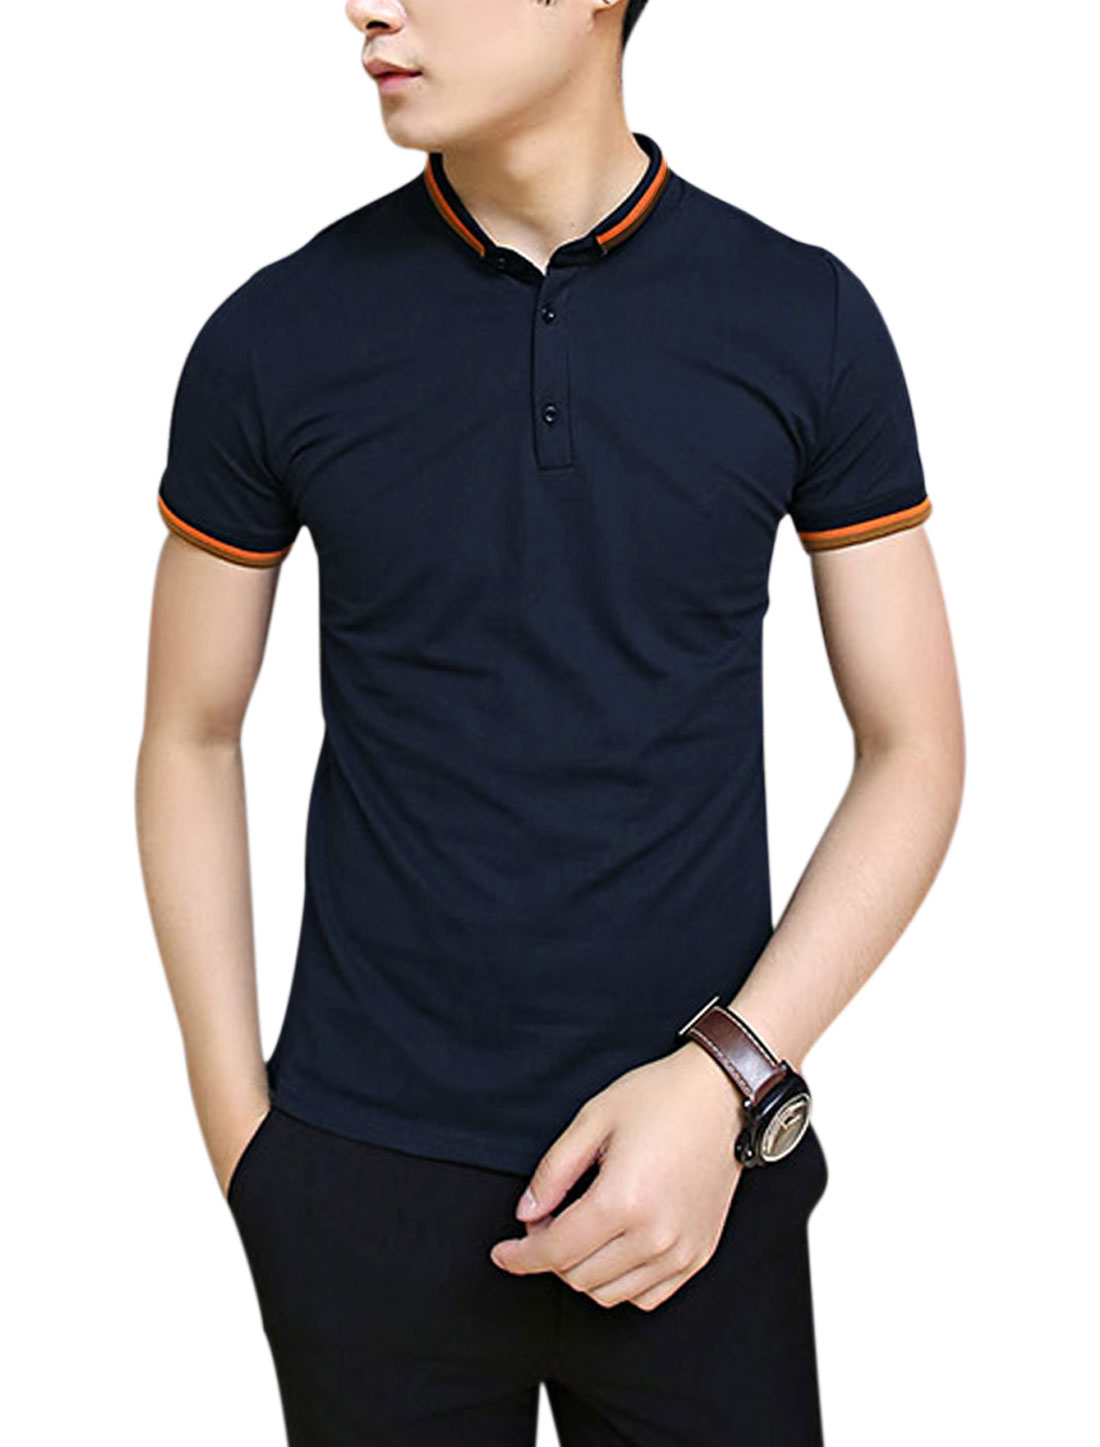 Men Convertible Collar Short Sleeve Slim Fit Polo Shirt Navy Blue M